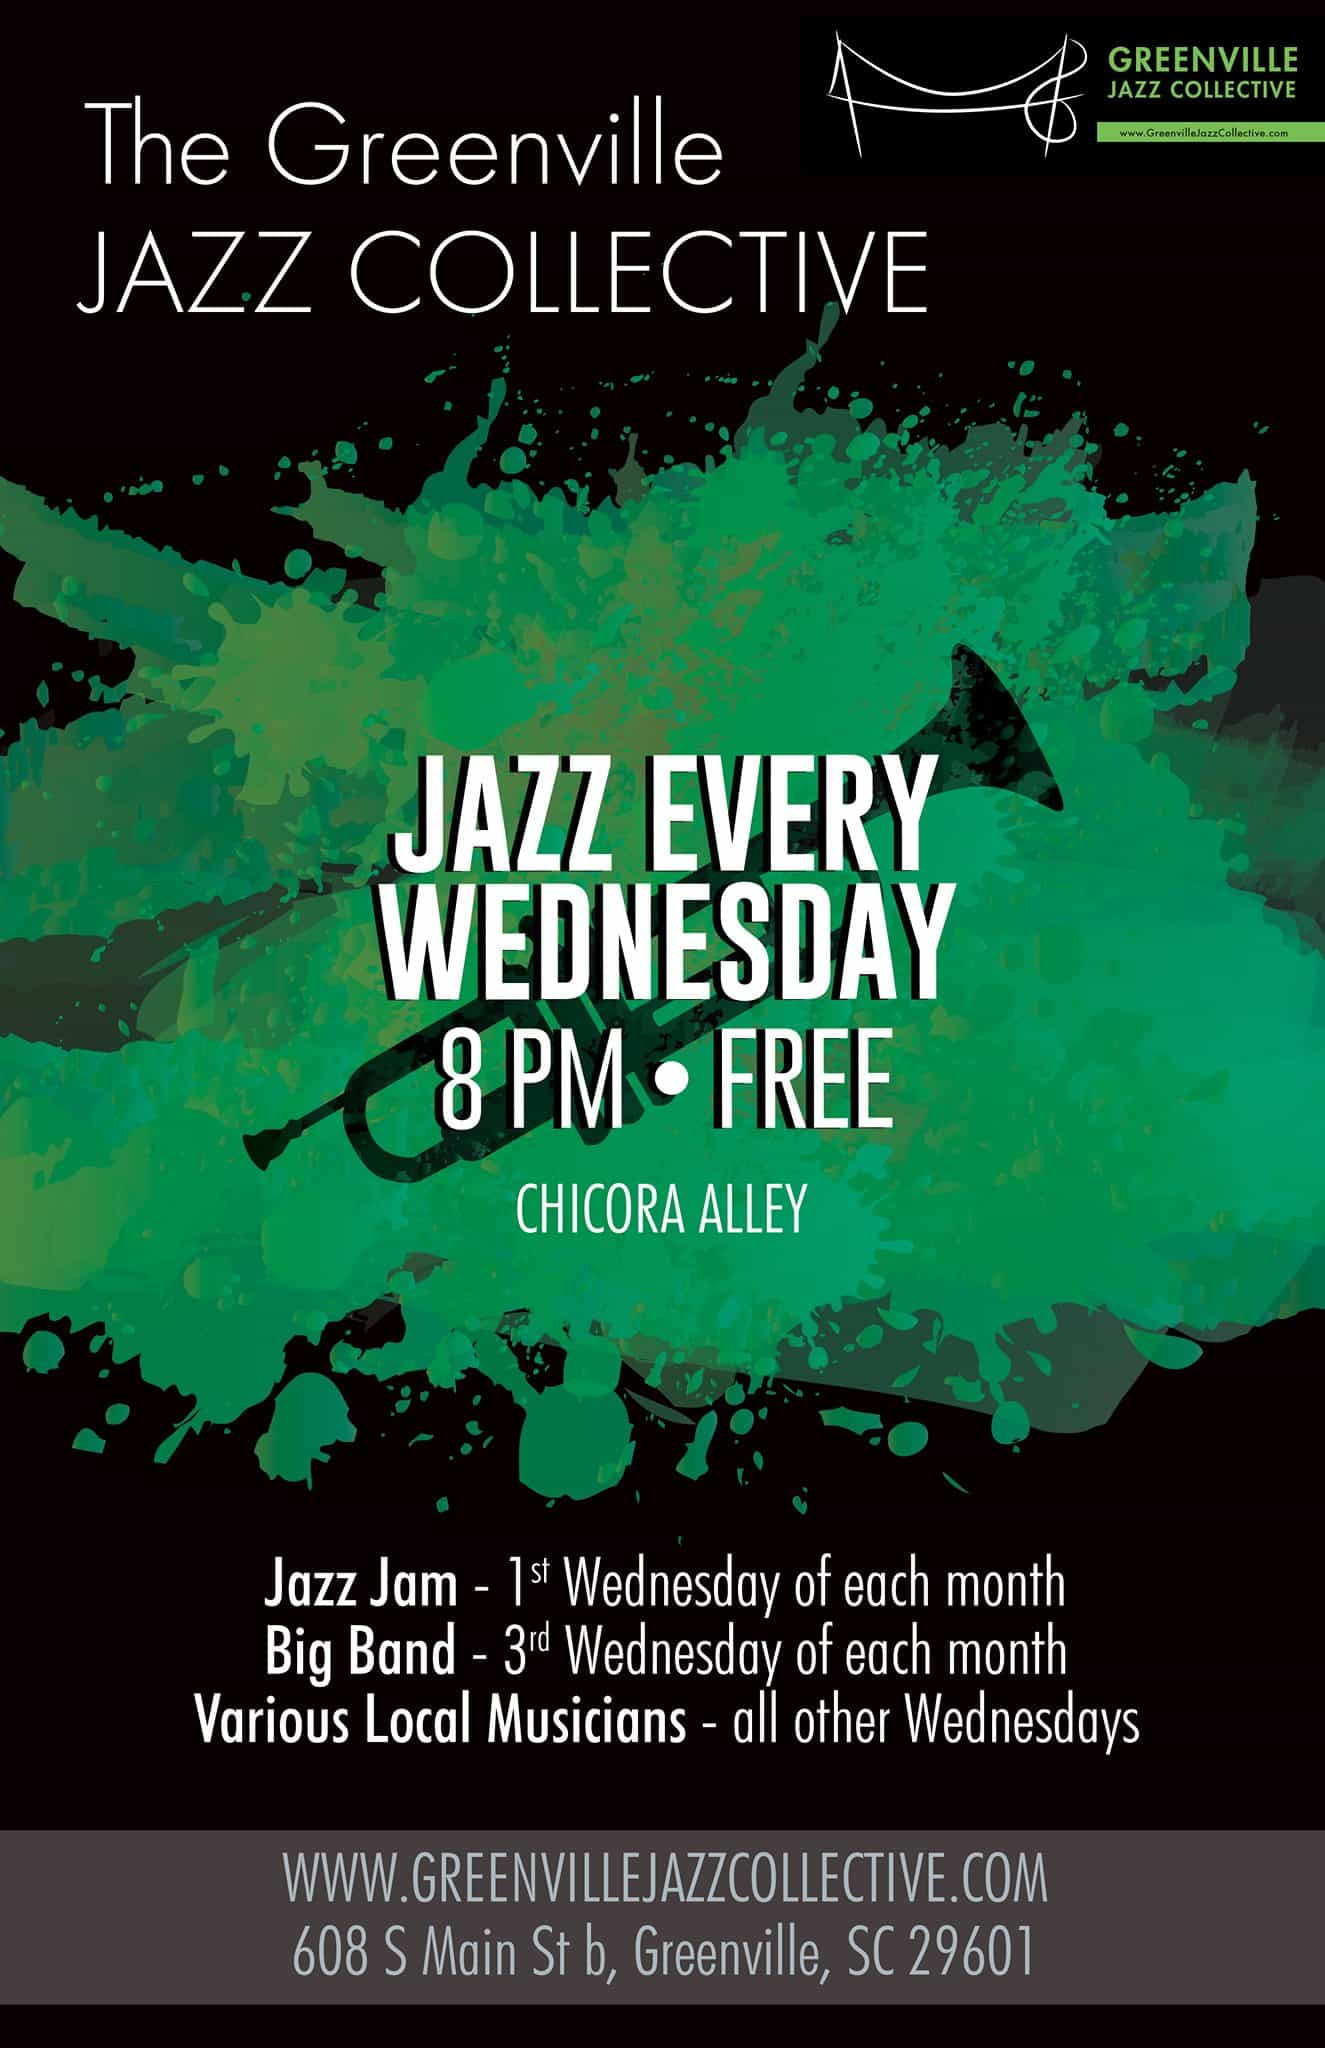 Wednesday Night Jazz: Shannon Hoover/Joshua Joyner